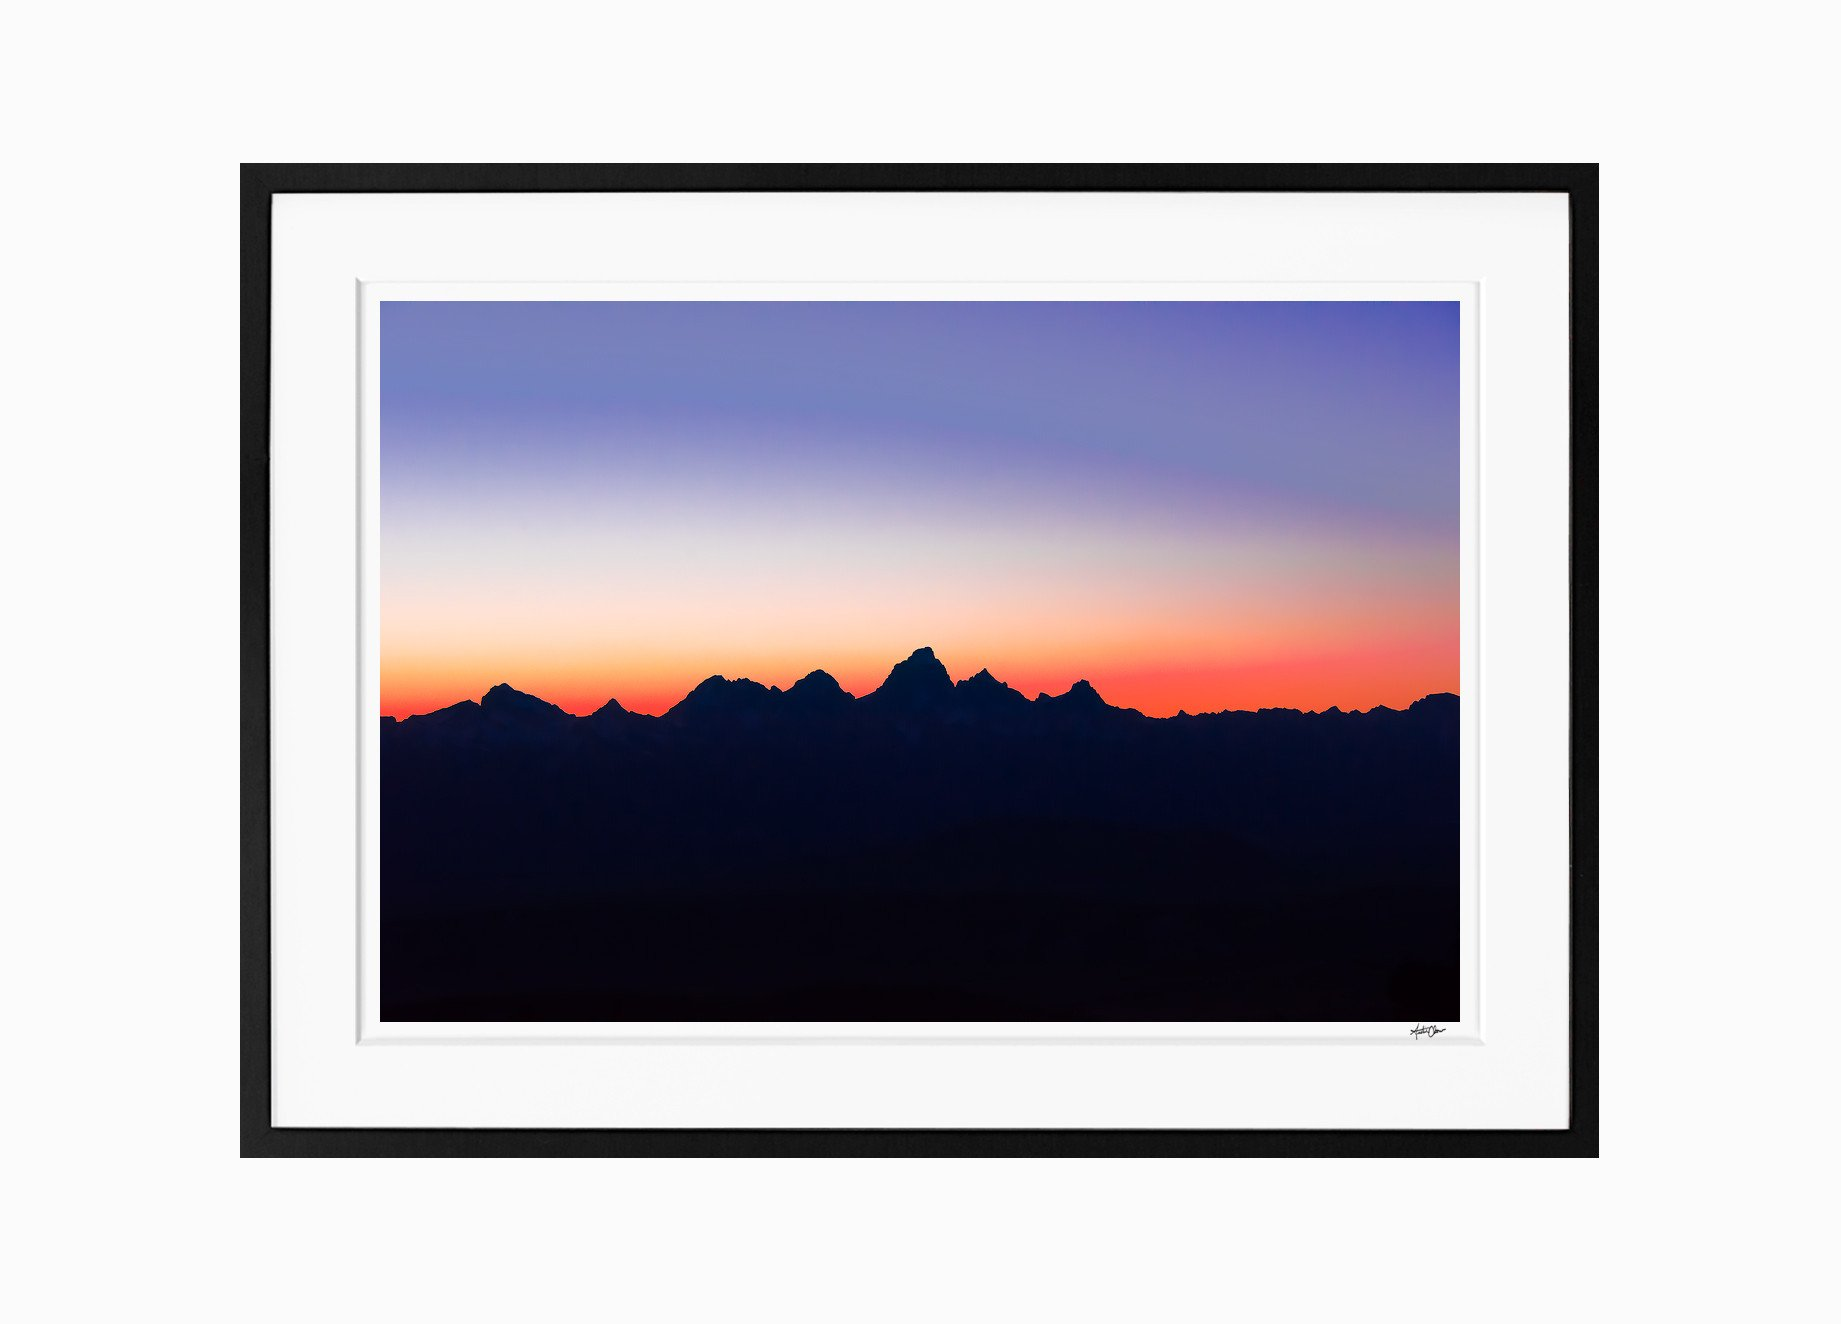 1841x1324 Paintbrush Silhouette The Grand Tetons, Wyoming Austin Chow